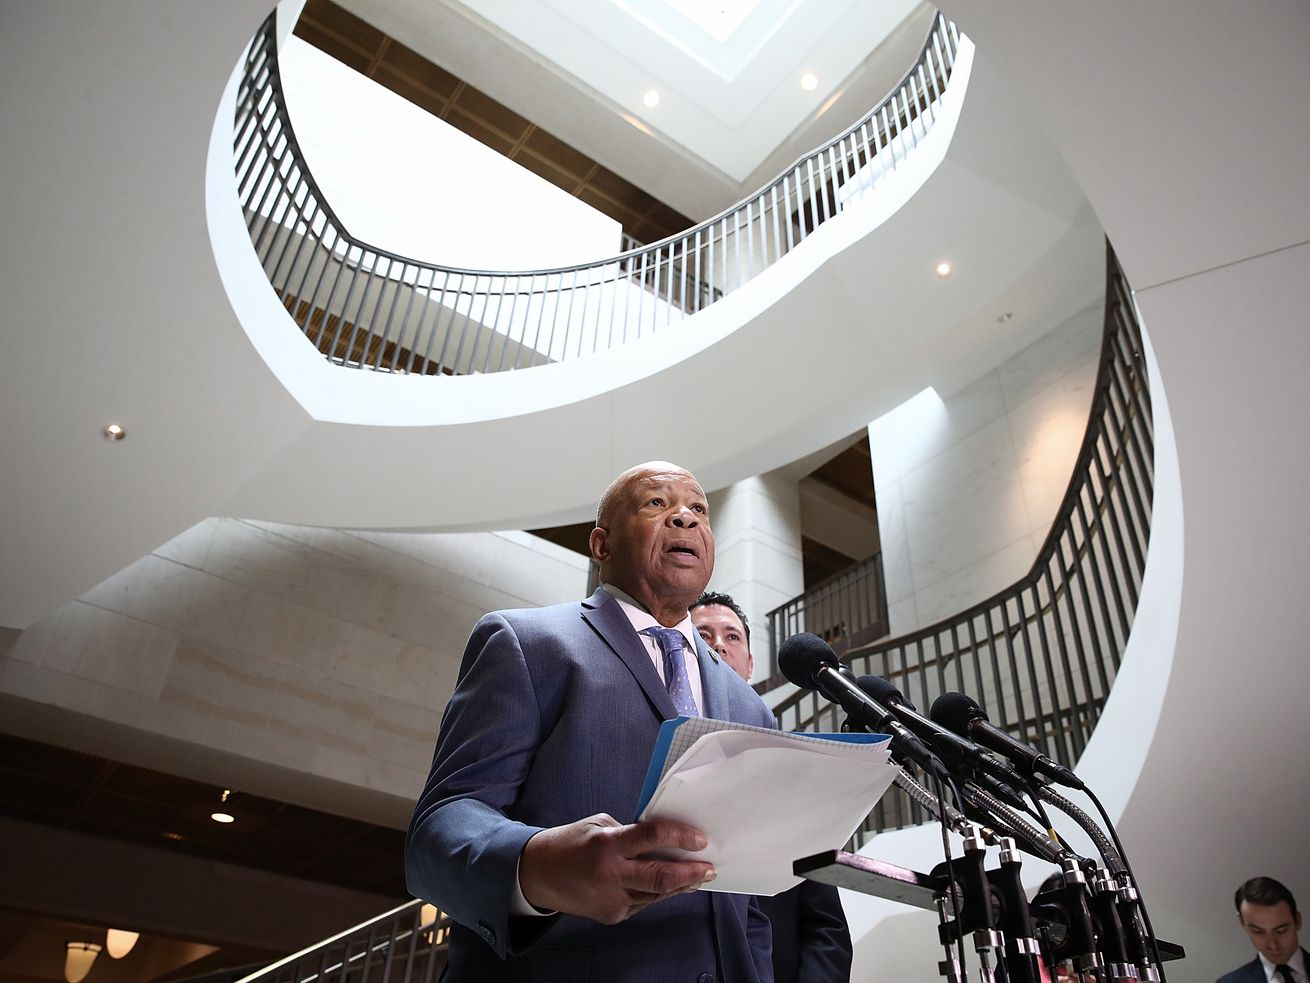 Rep. Elijah Cummings stands in front of microphones beneath a staircase in the Capitol.